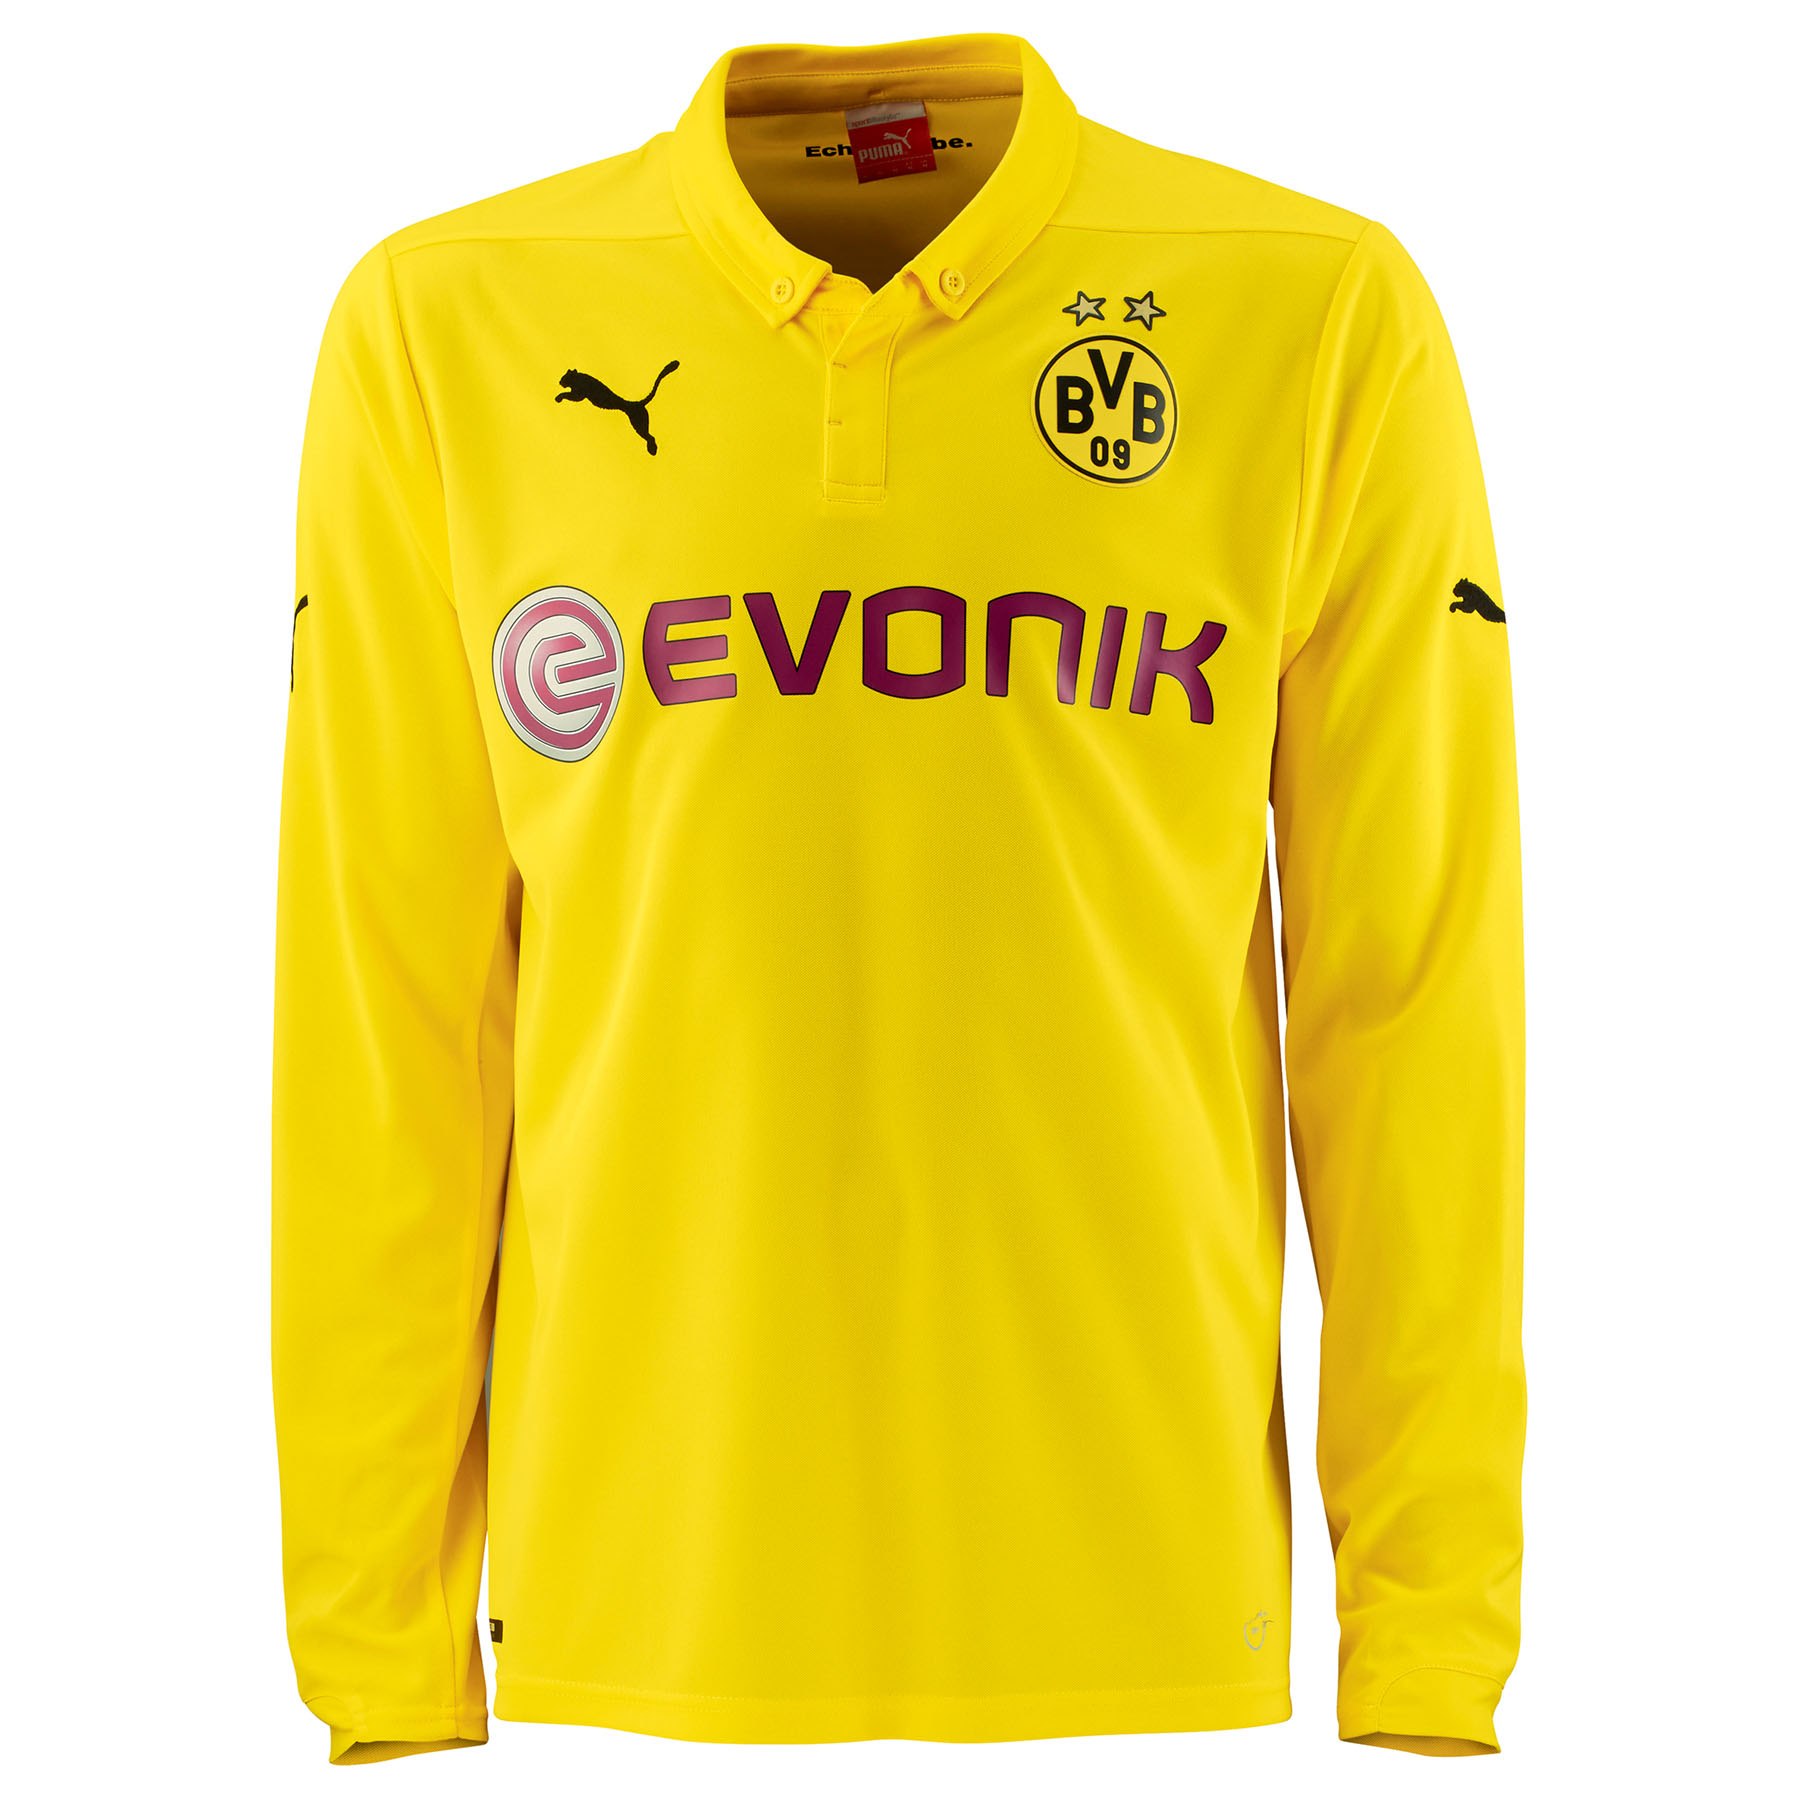 BVB International Home Shirt 2014/15 - Long Sleeve